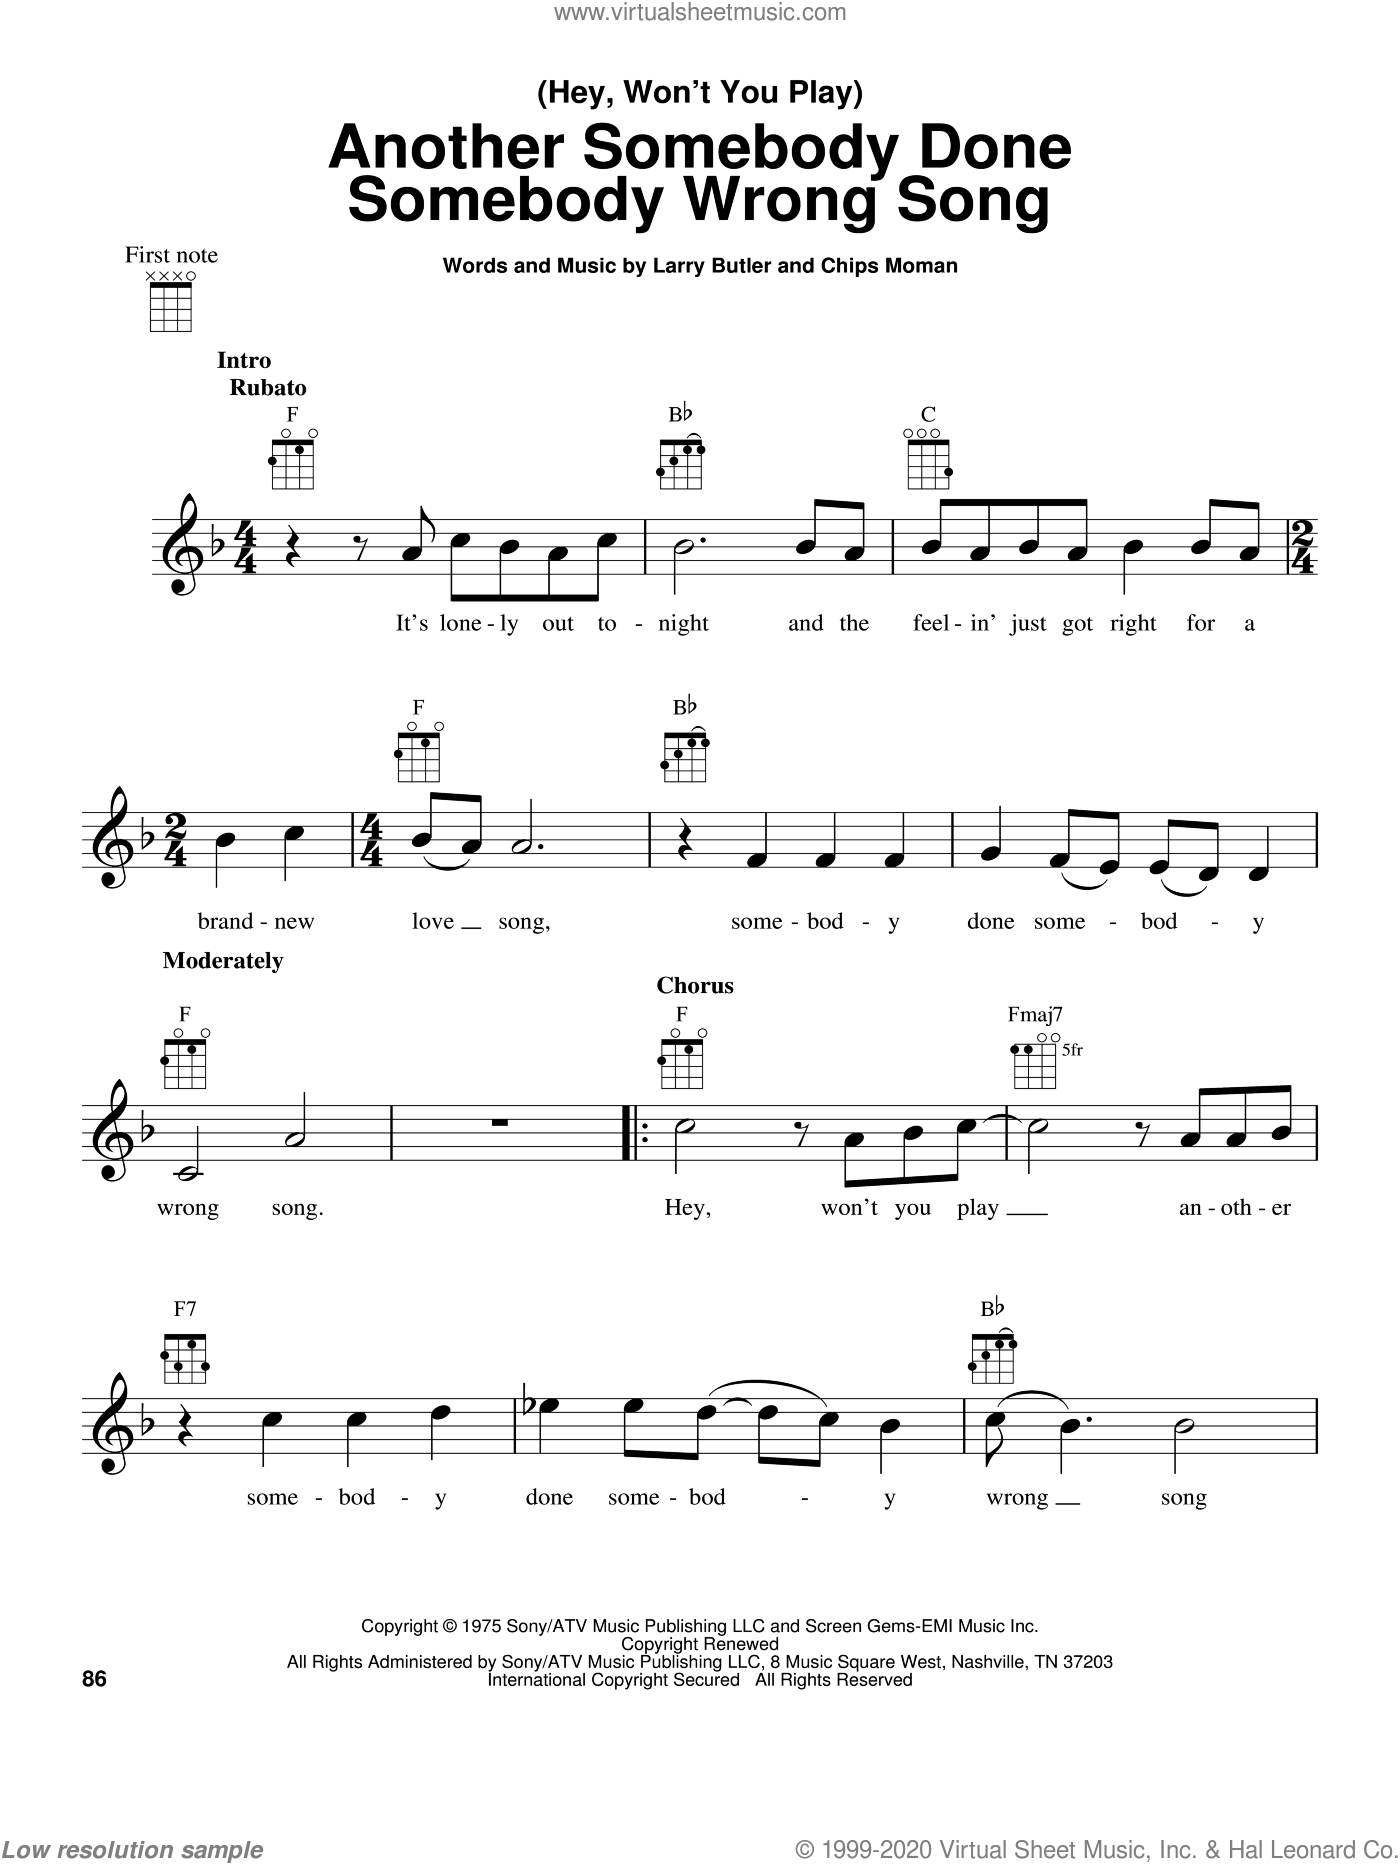 (Hey, Won't You Play) Another Somebody Done Somebody Wrong Song sheet music for ukulele by Larry Butler, B.J. Thomas and Chips Moman. Score Image Preview.